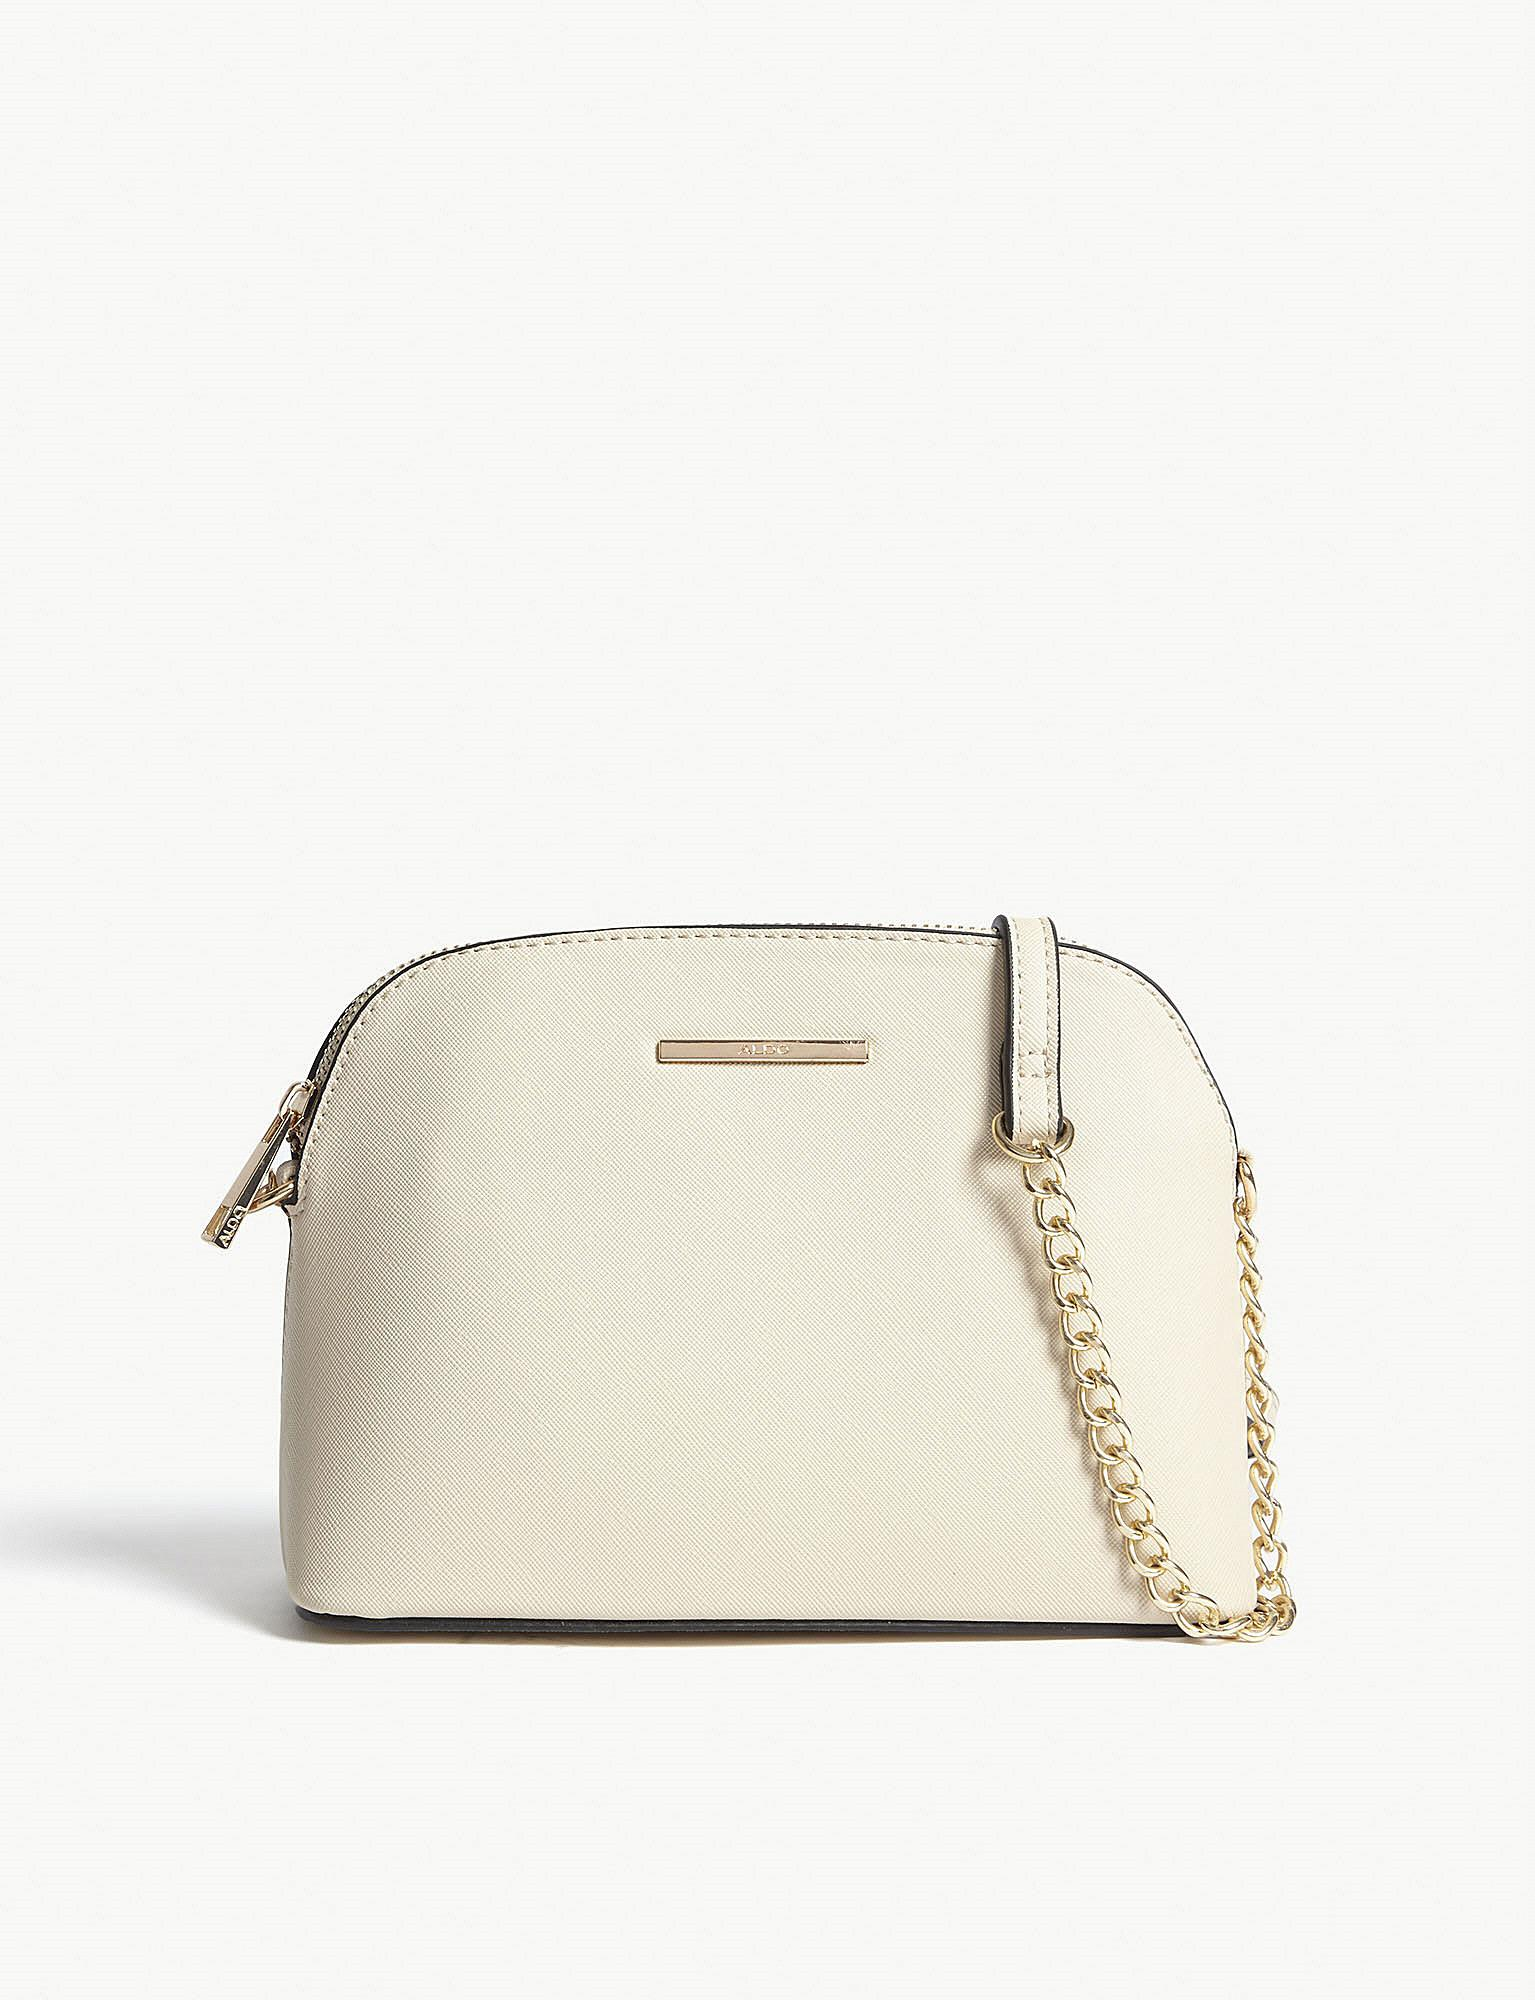 Lyst - ALDO Elroodie Cross-body Bag in Natural 28070100d9e11